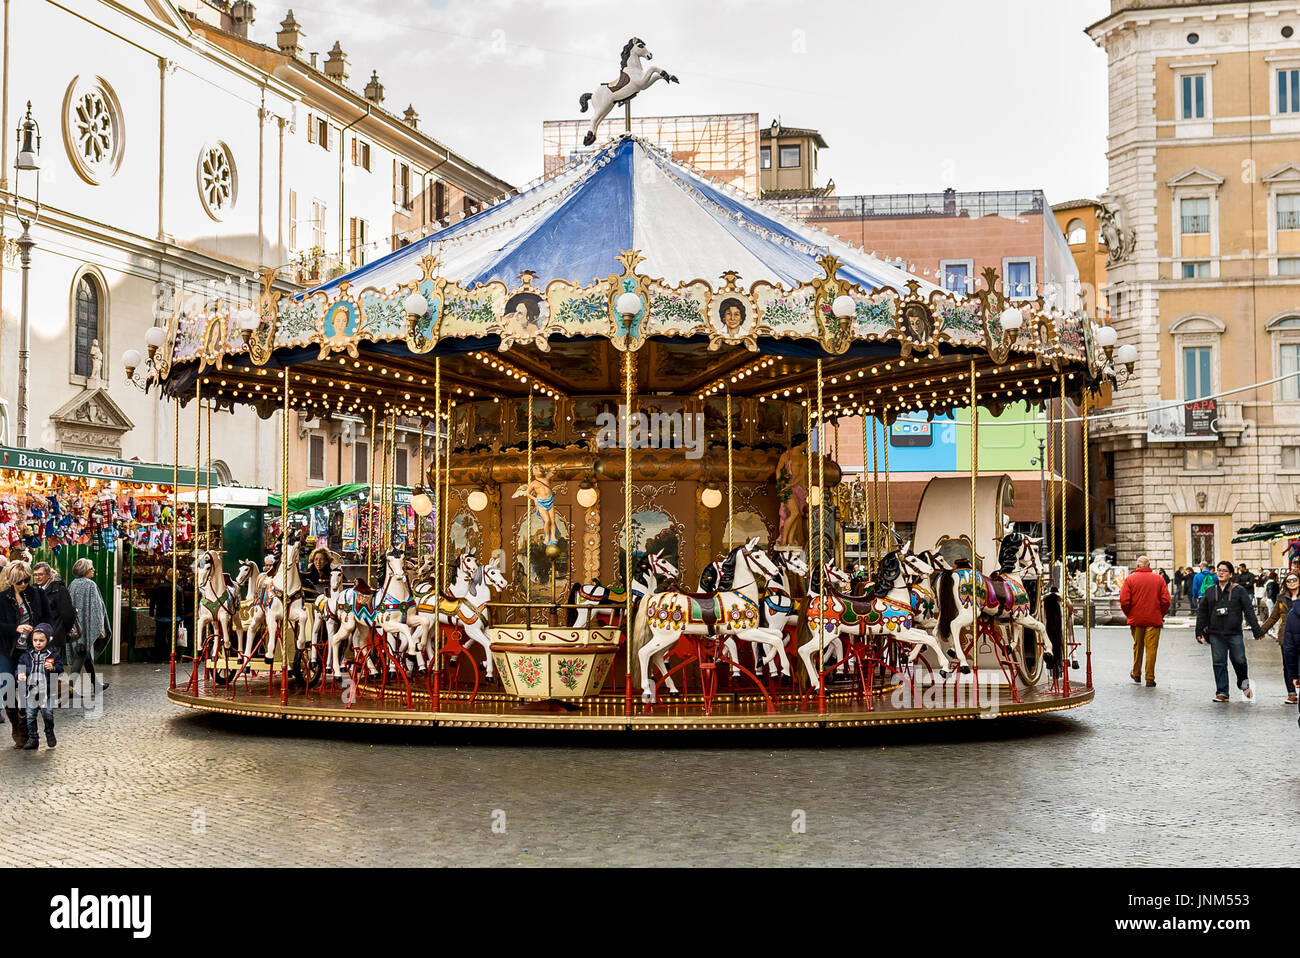 Rome, Italy, carousel in Piazza Navona - Stock Image